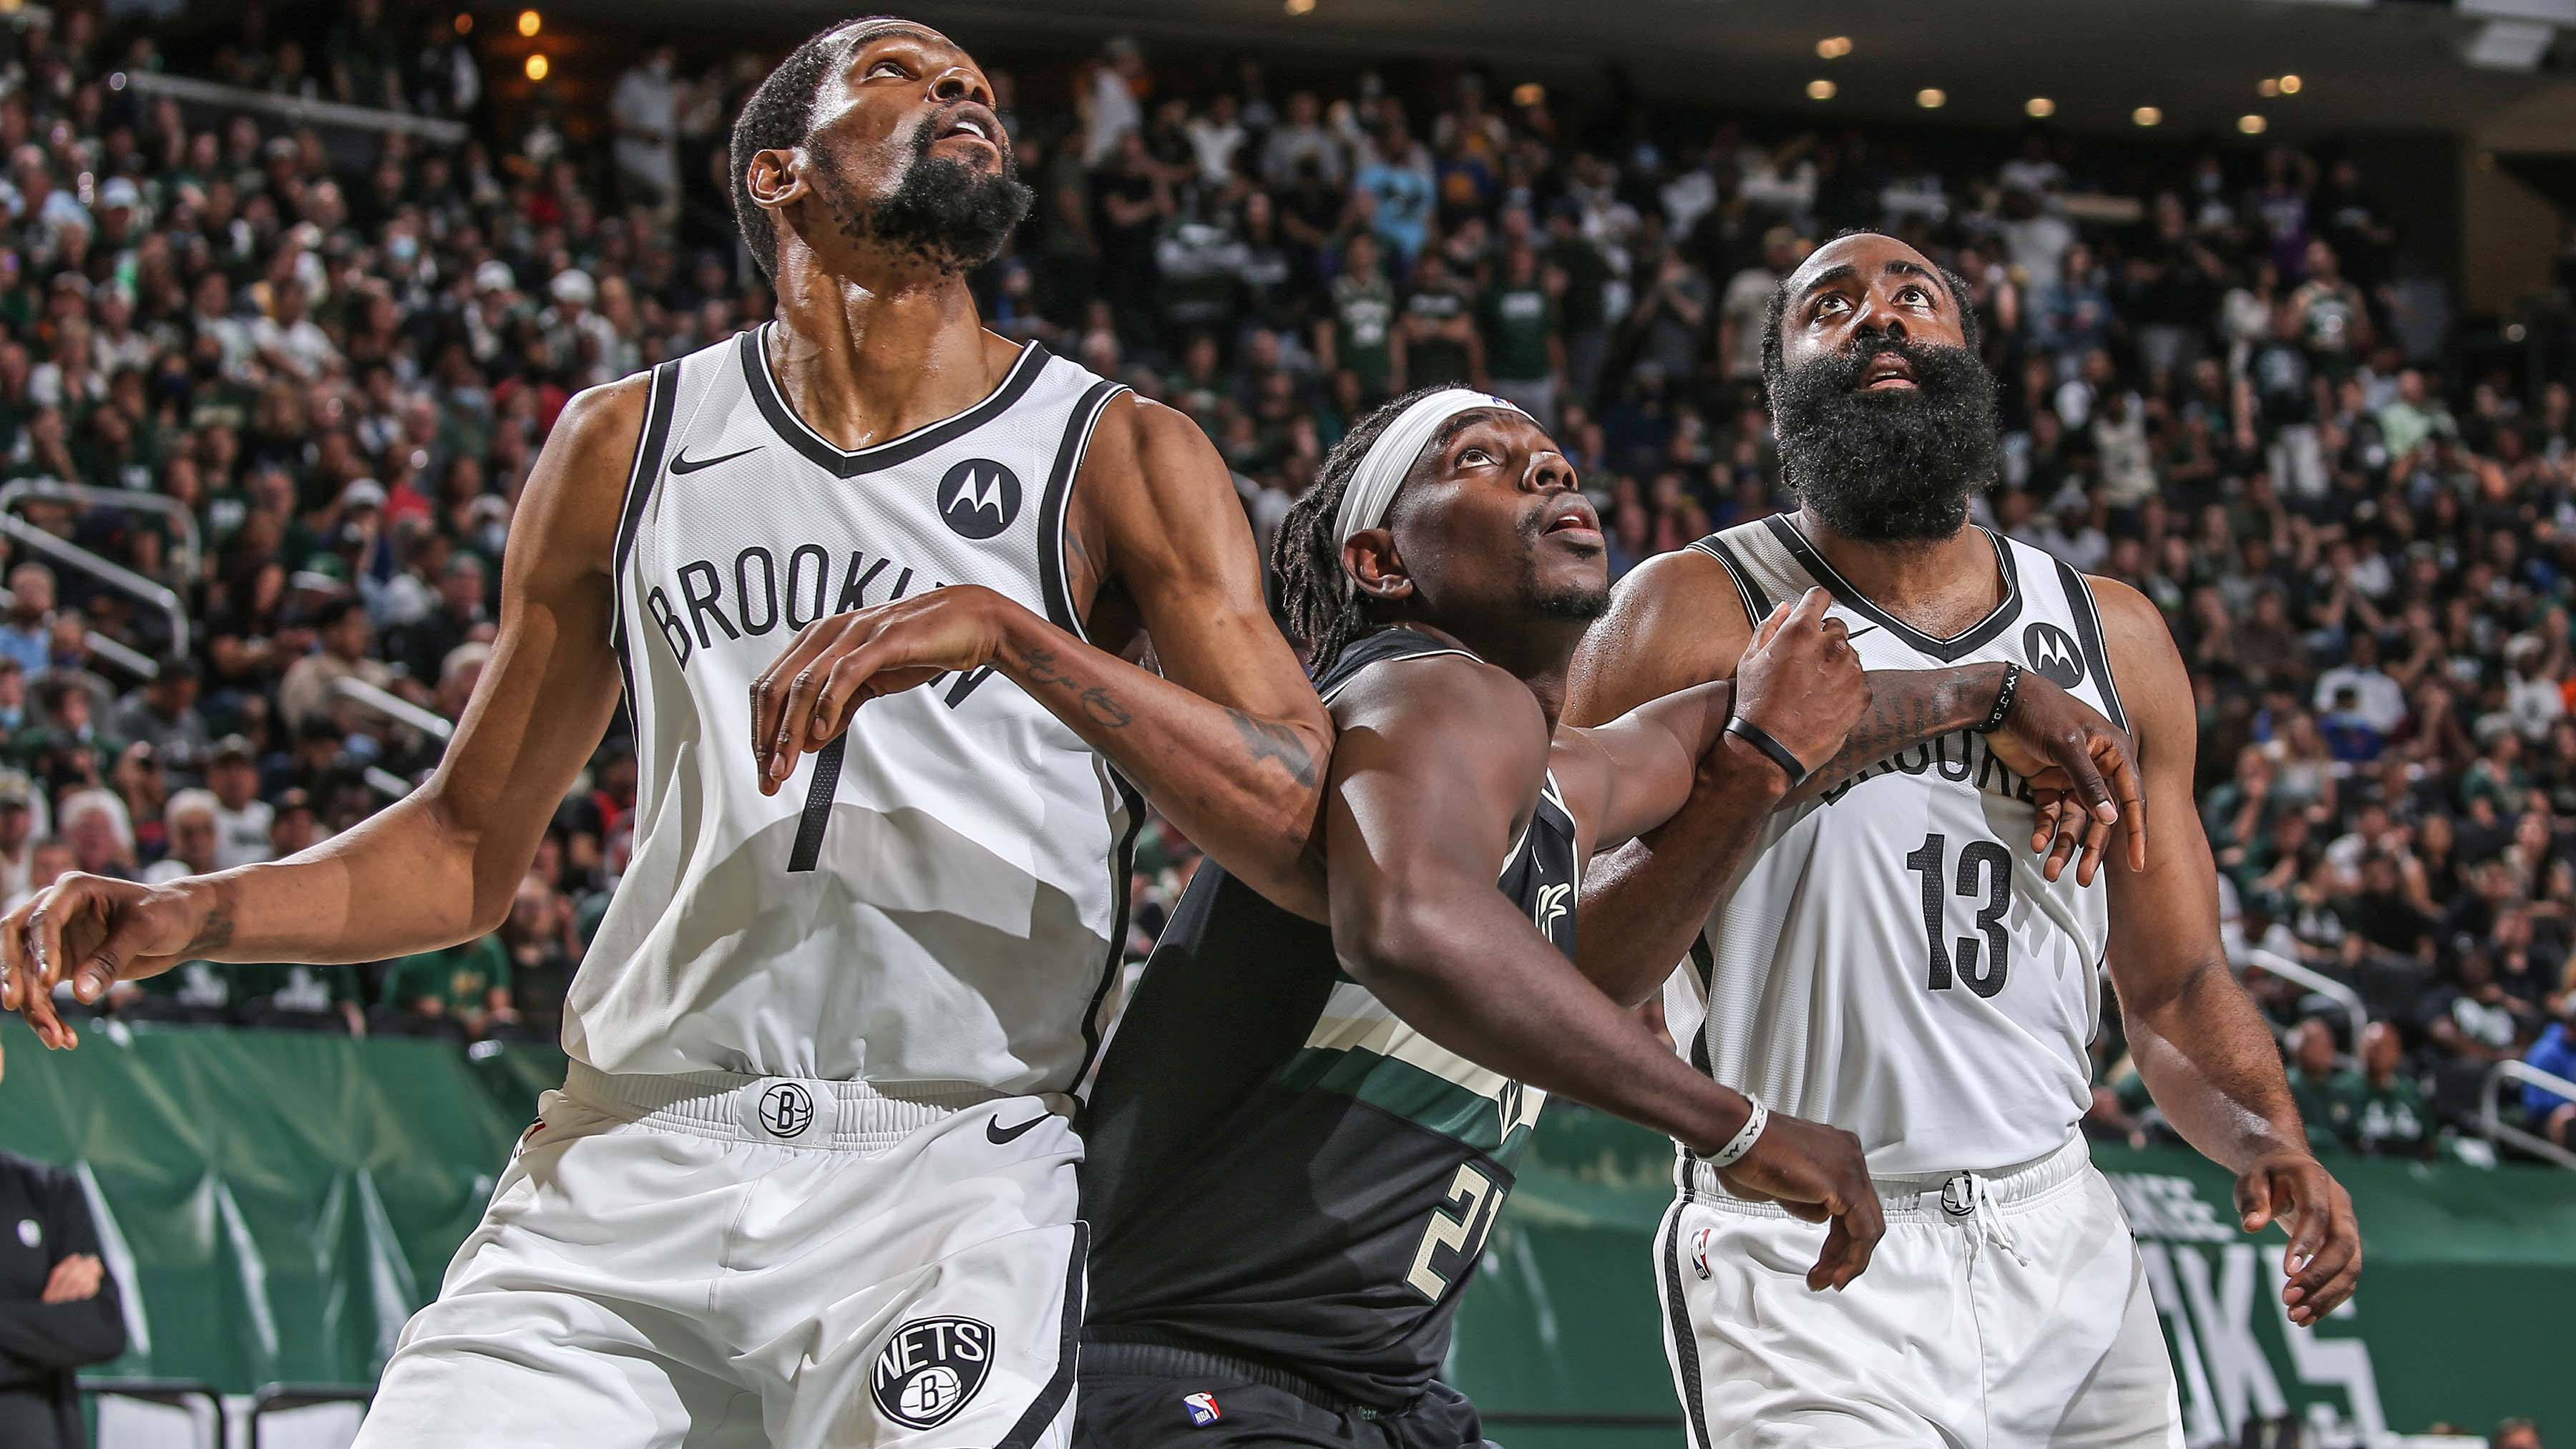 Nets vs. Bucks Game 7: Why you should bet on Brooklyn to advance